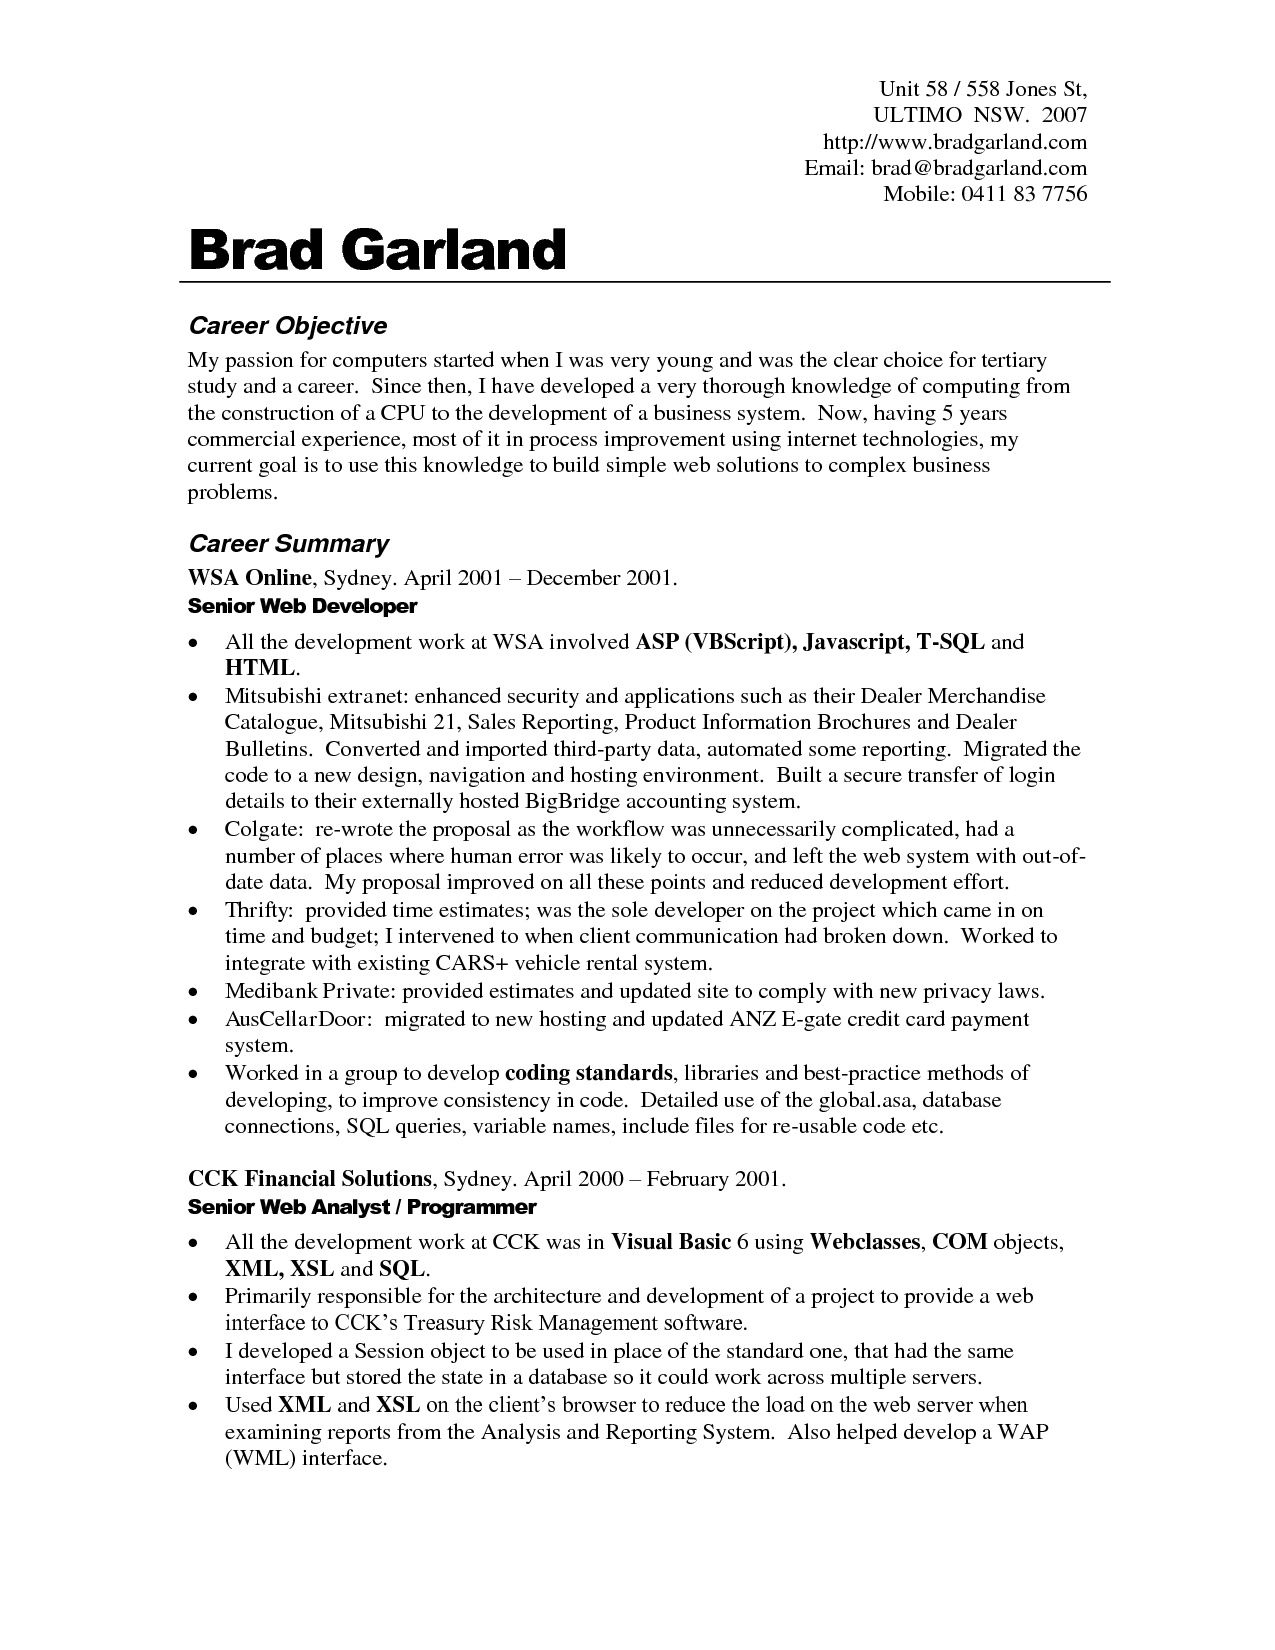 resume samples career objective - Resume Objectives For Management Positions